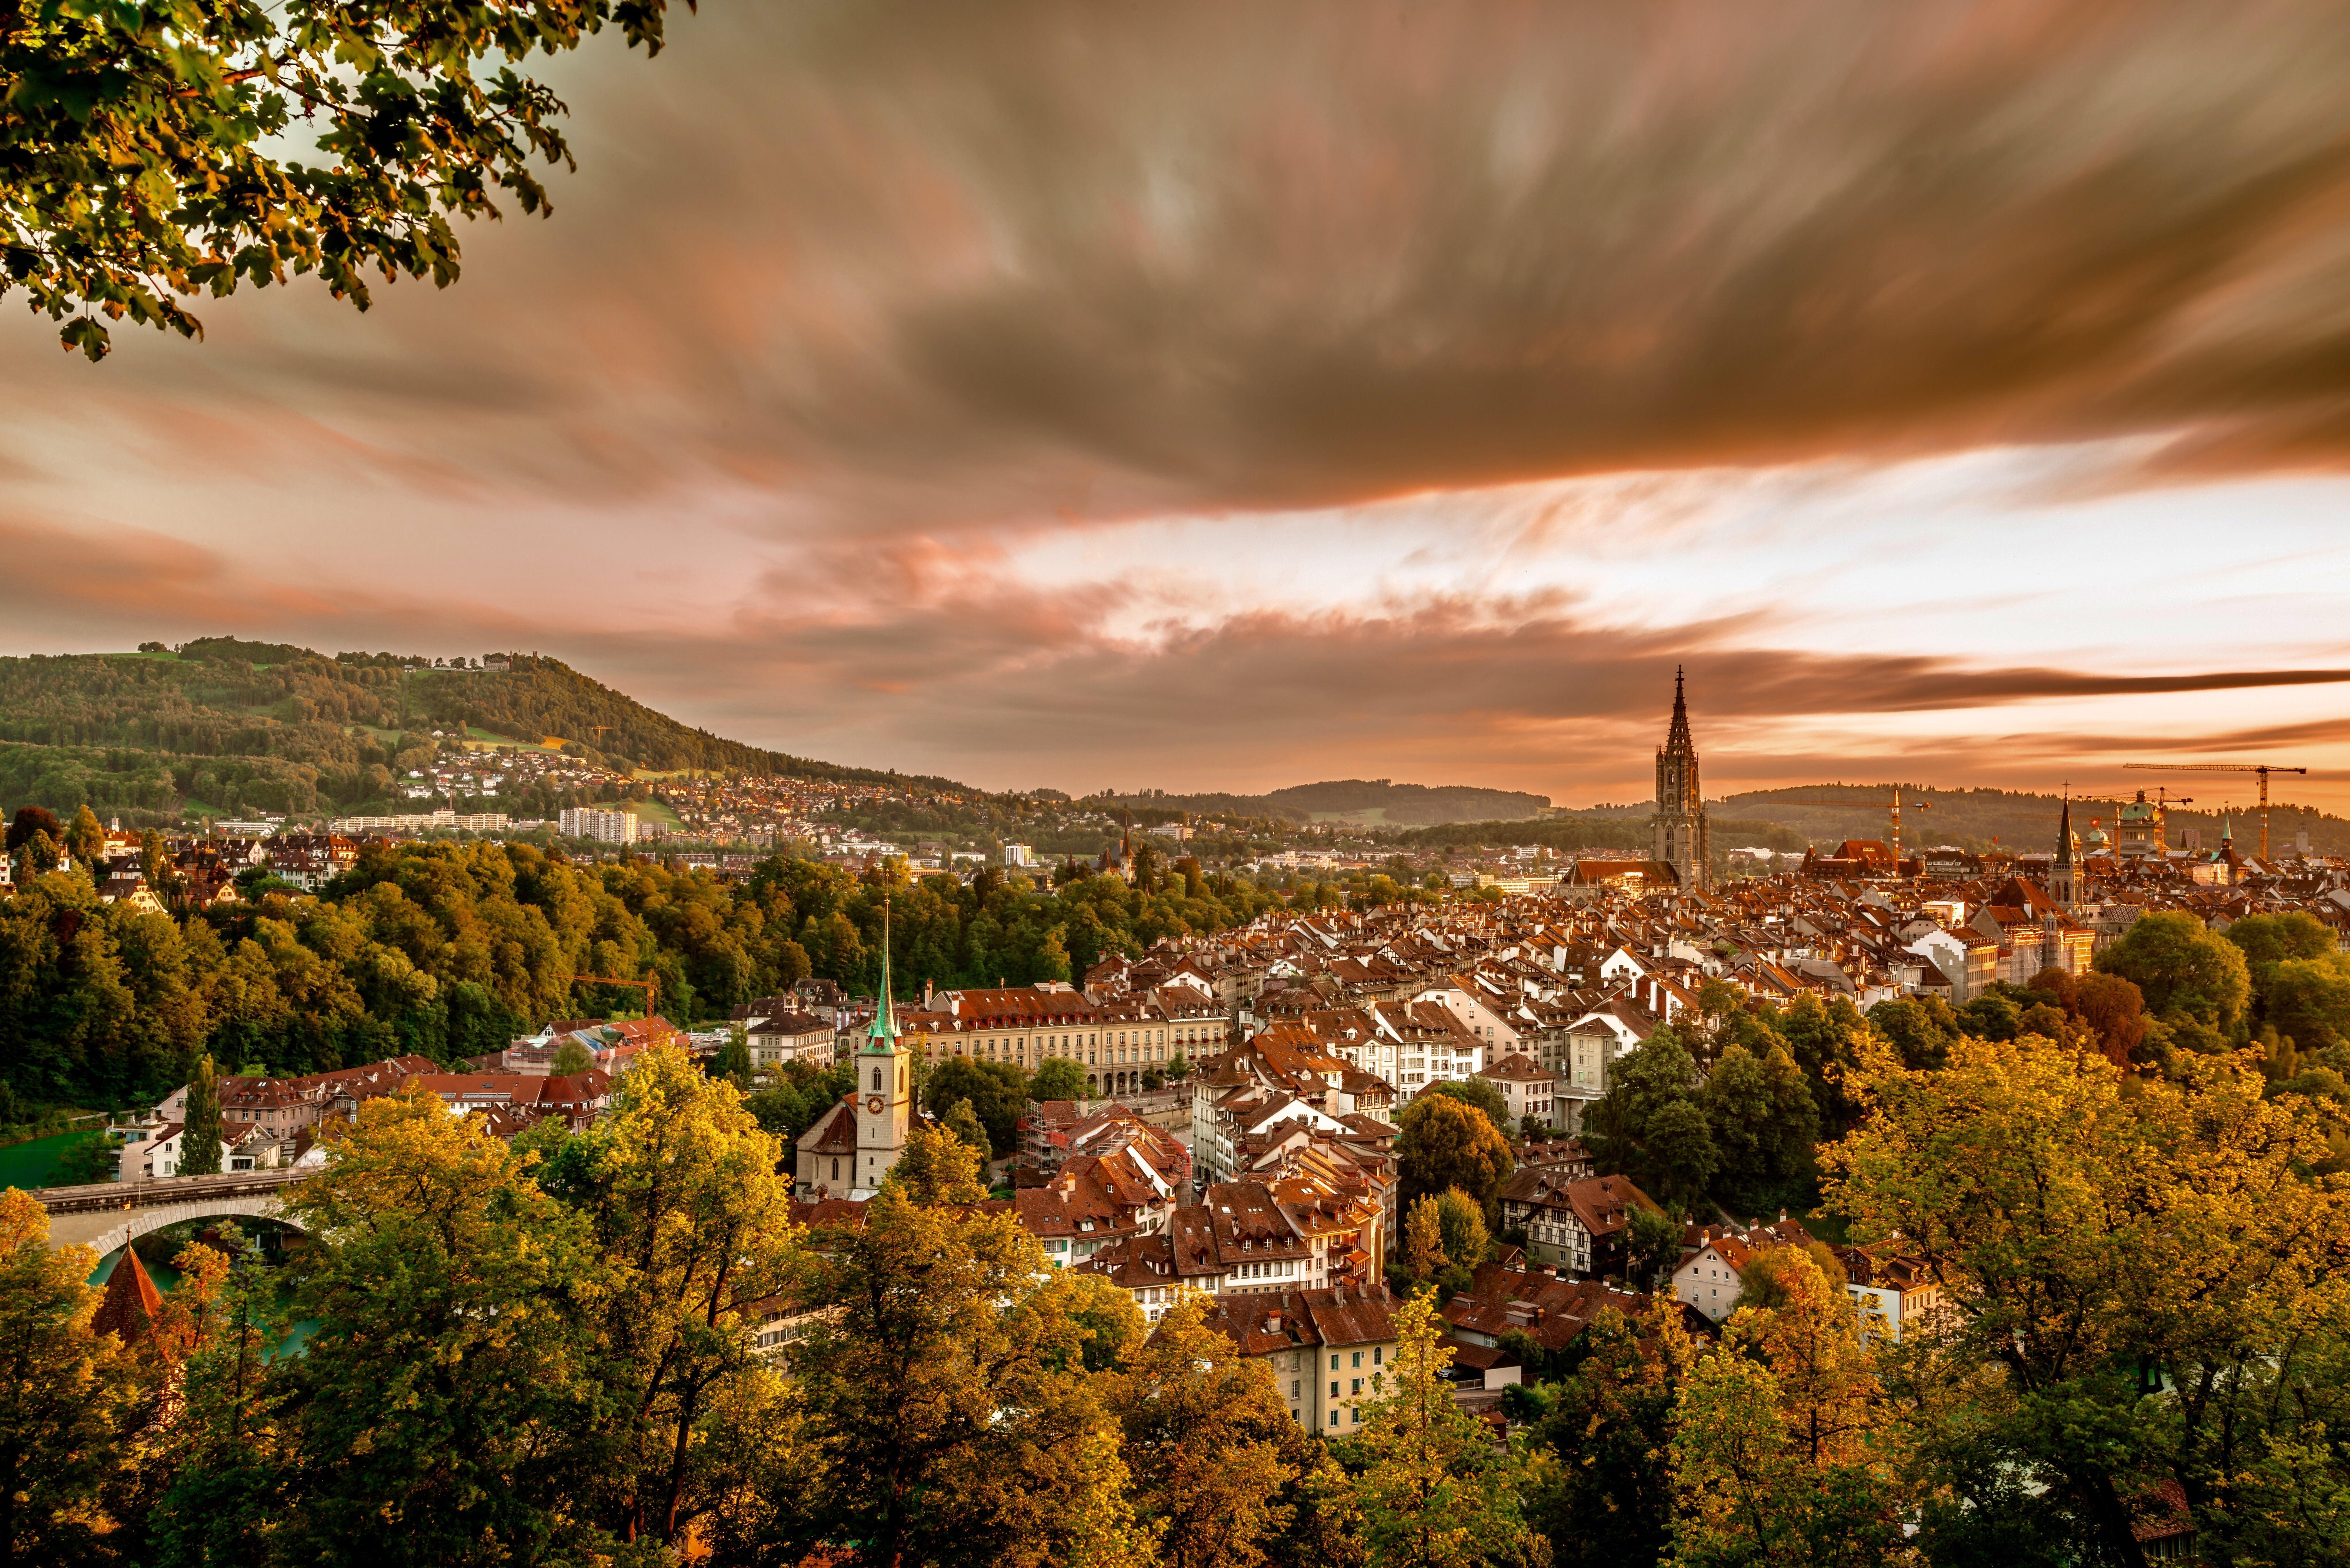 Bern 5k Retina Ultra HD Wallpaper | Background Image | 7360x4912 ...